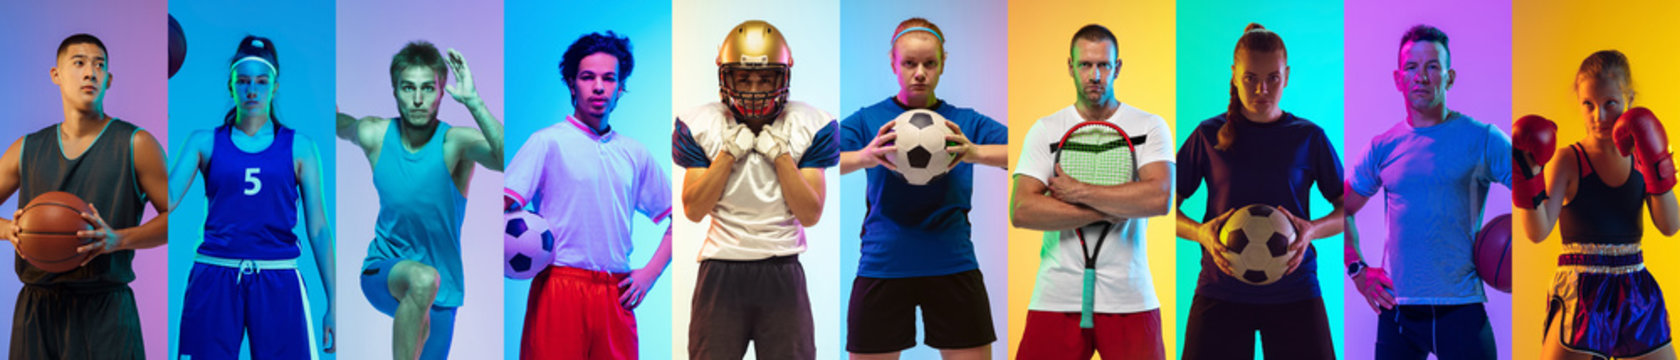 Sport collage of professional athletes or players, sportsmen on multicolored background in neon. Made of different photos of 9 models. Concept of motion, action, power, active lifestyle, competition.